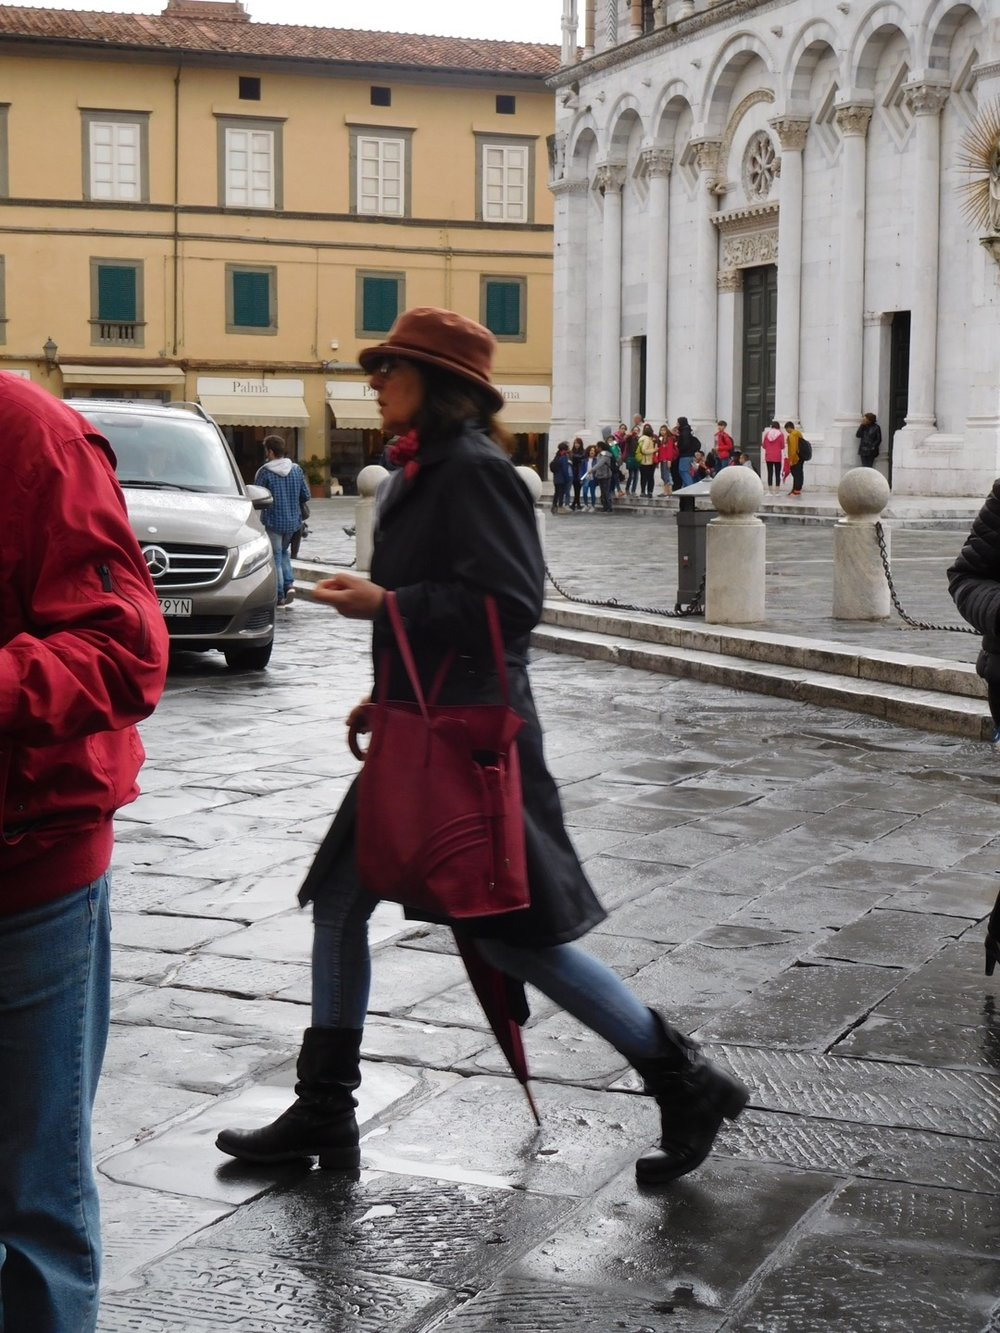 Italians look stylish, even in raingear.